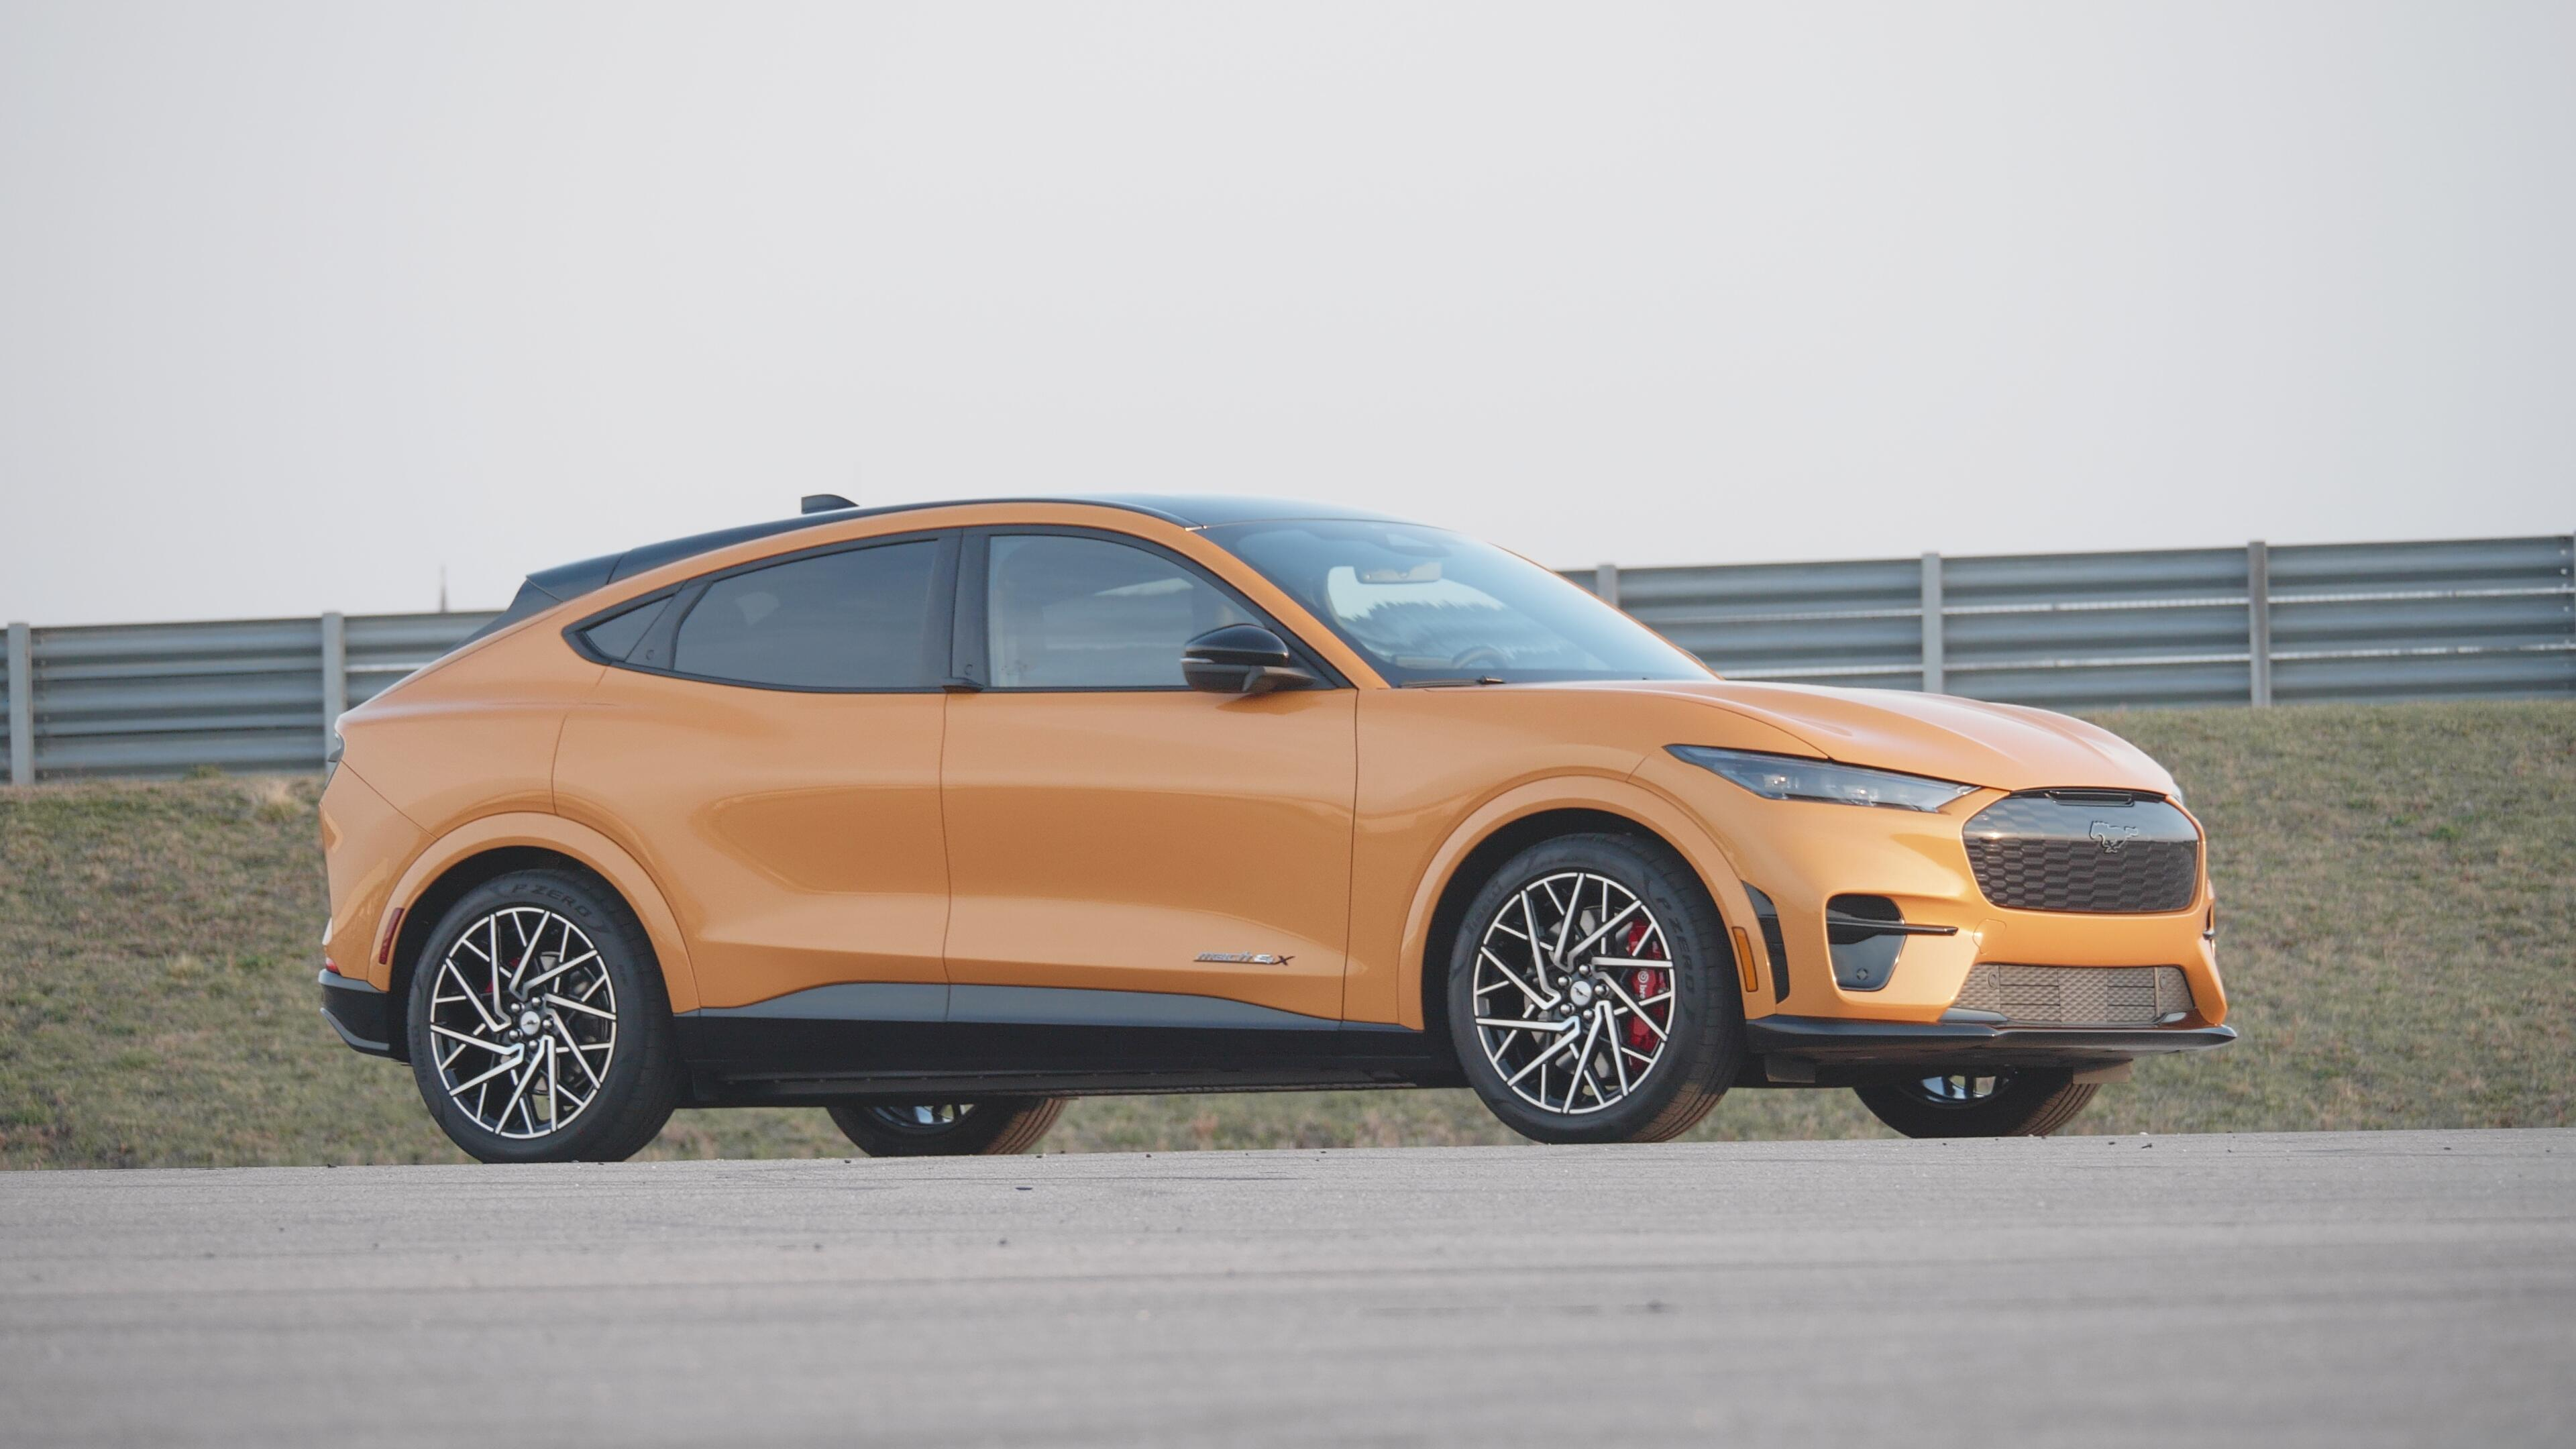 2022 Ford Mustang Mach-E GT Performance Edition - Cyber Orange